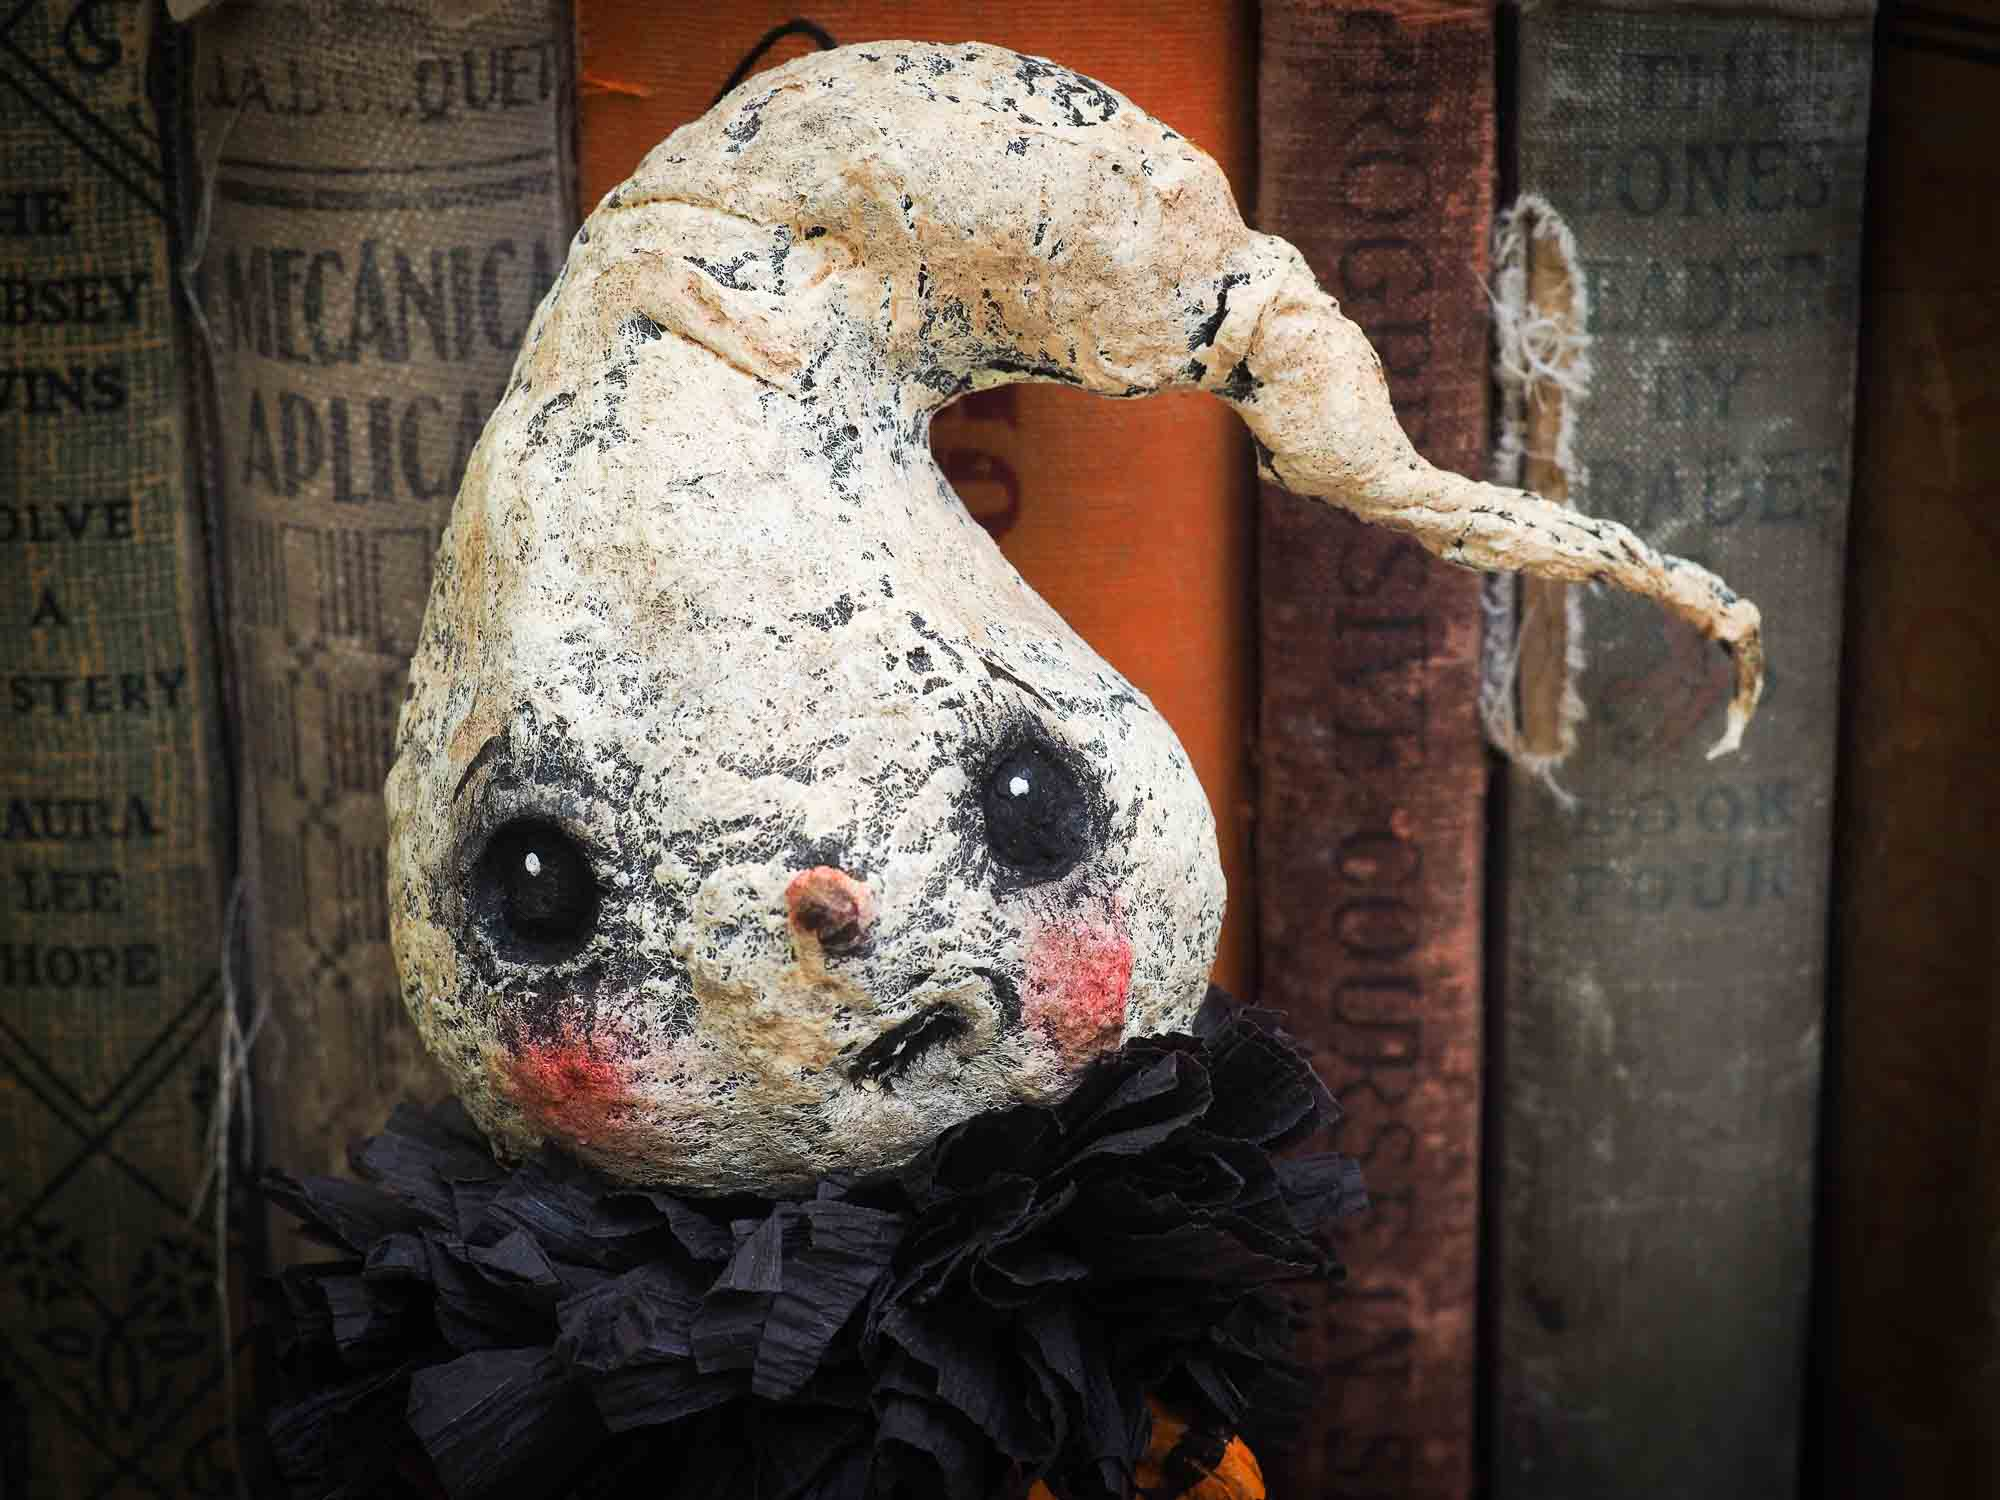 ghost ghoul spirit ornament Halloween decoration. Danita art original handmade art doll ghost made with spun cotton from collection of witches, ghosts, skeletons, jack-o-lantern, pumpkin, vampire, ghouls and other whimsical folk art style home decor.